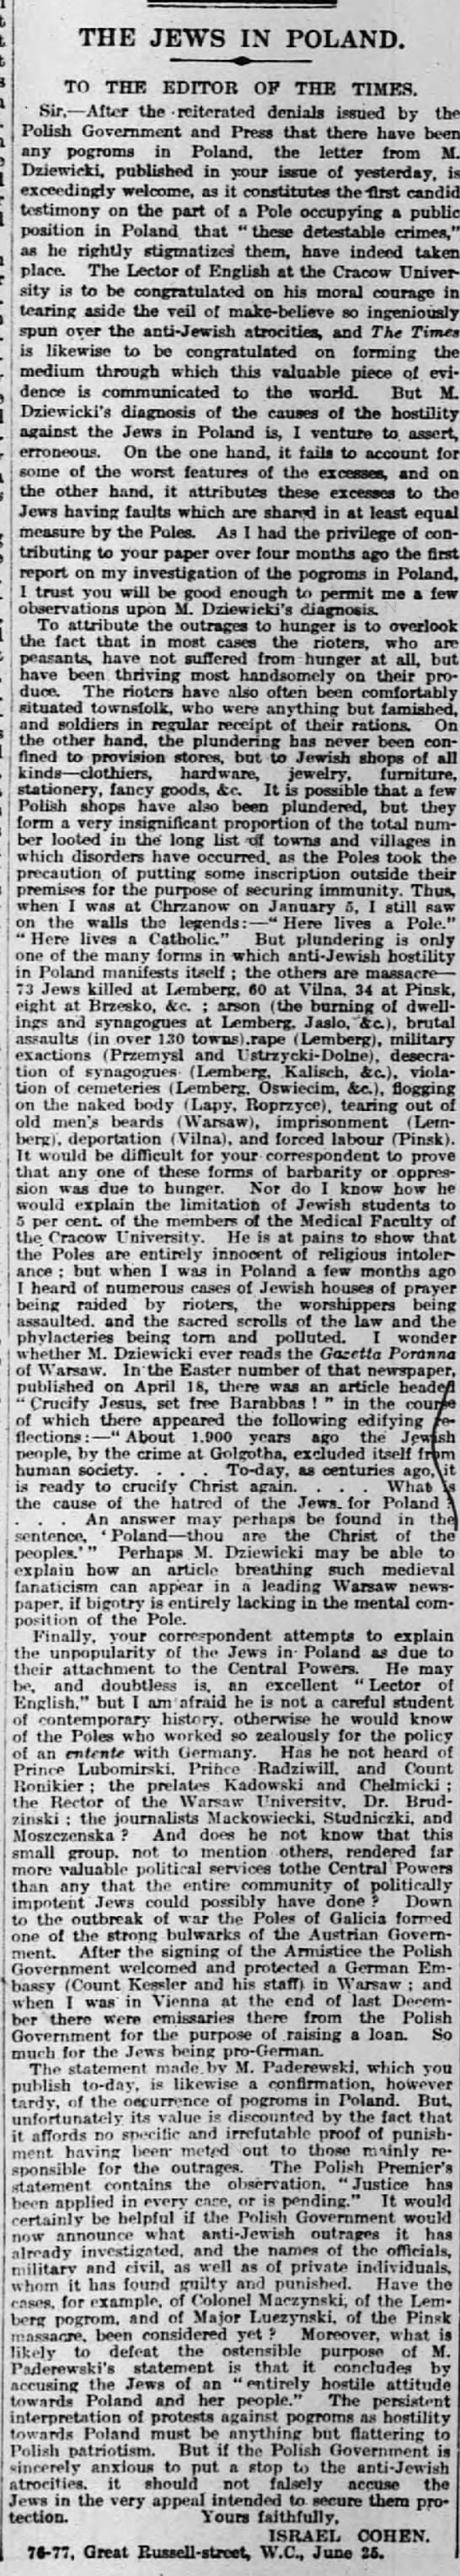 June 1919 Jews of Poland Letter to the Editor The Times London -